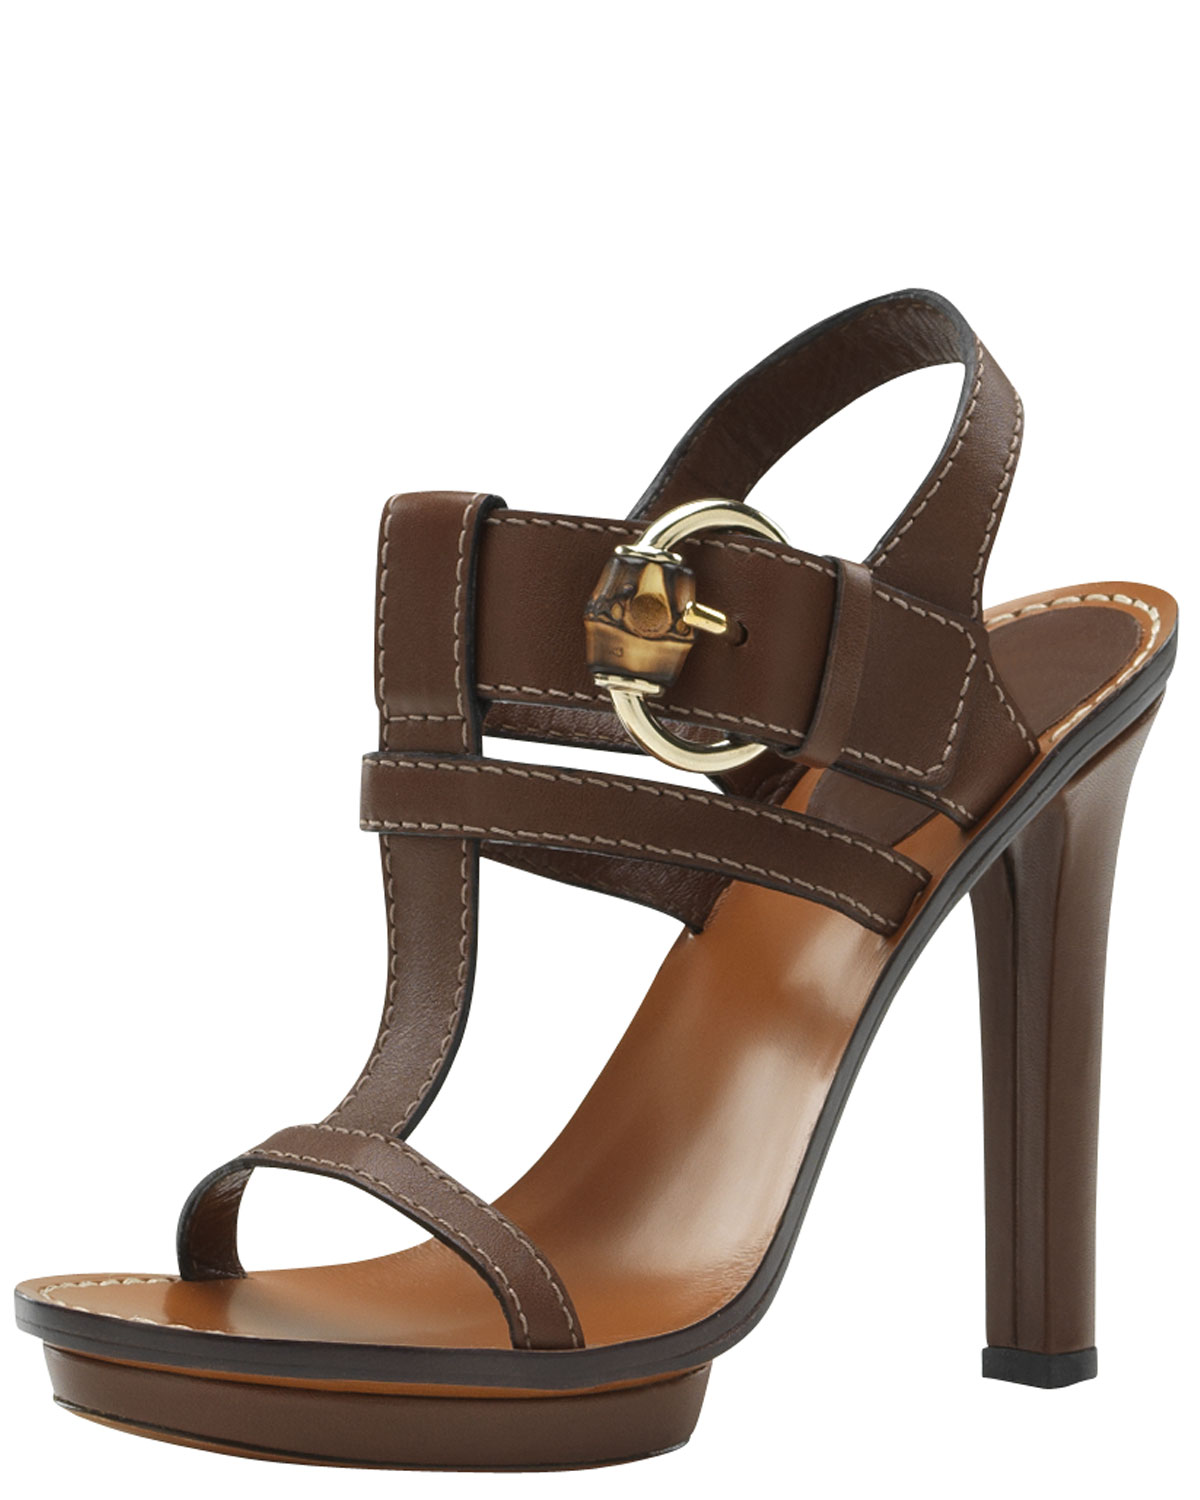 gucci gwen high heel platform sandal in natural lyst. Black Bedroom Furniture Sets. Home Design Ideas